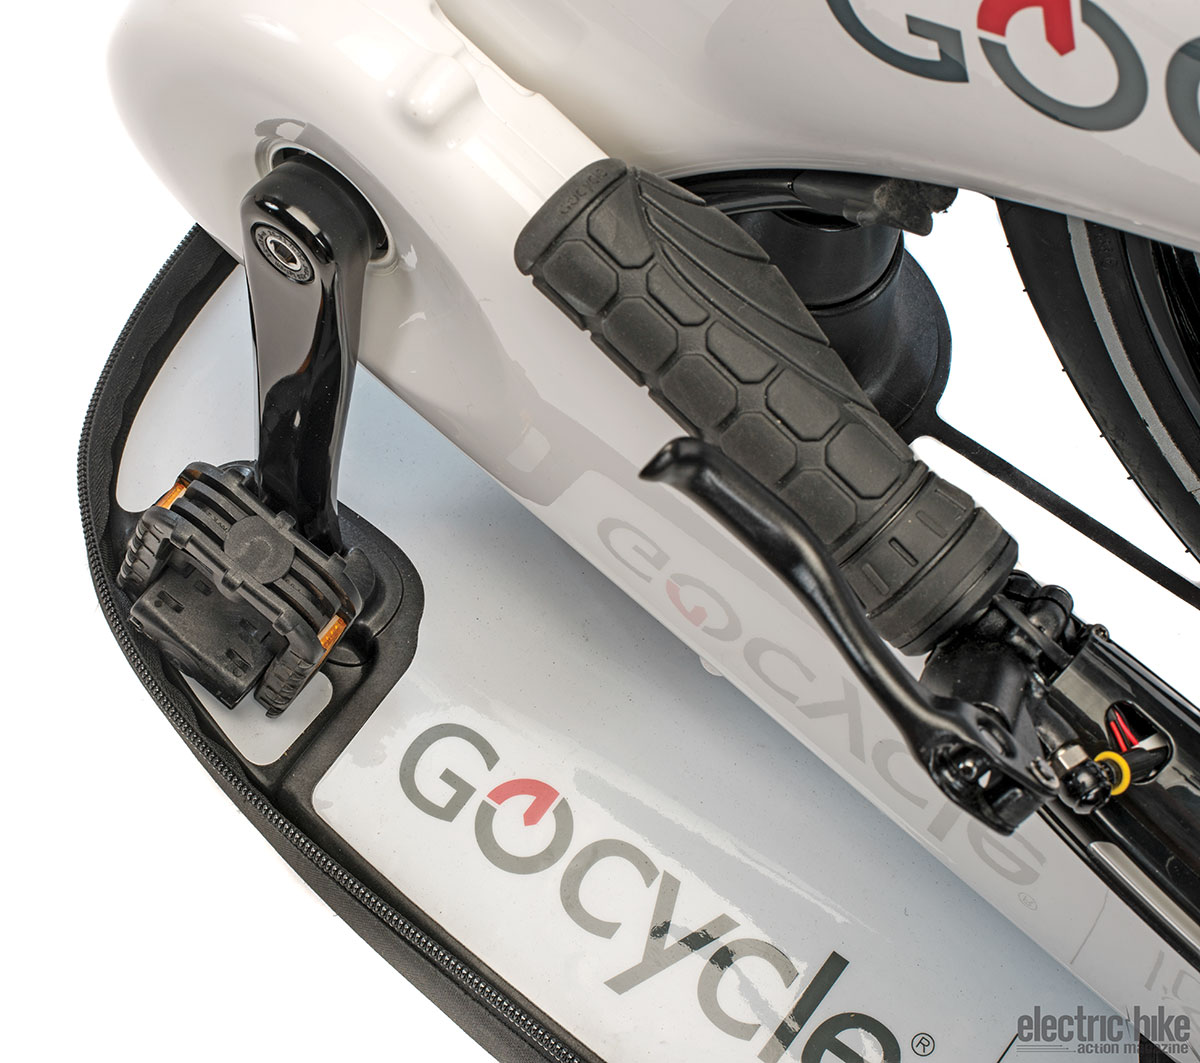 (Above) There is a lot of engineering in every detail of this bike. (Right) The G3 folds into a docking base with a tiny footprint. It's perfect for apartment dwellers.